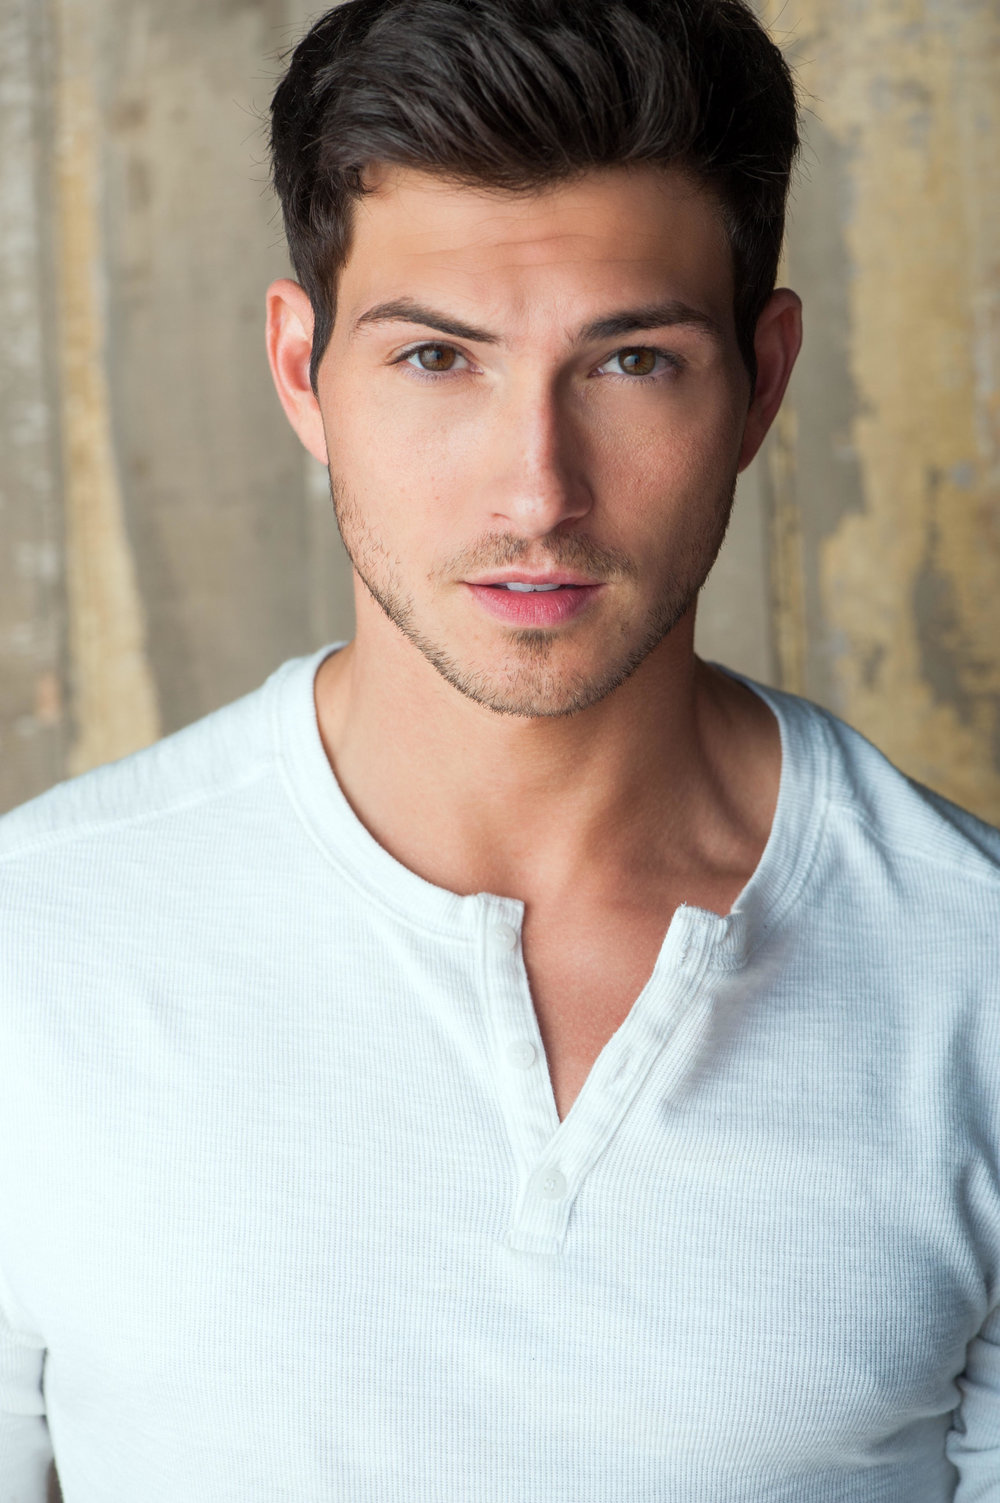 """Robert Scott Wilson –Ben the adopted son   Wilson, a Massachusetts native, made the move to Los Angeles in 2010 to pursue his journey as an actor. Robert Scott Wilson currently stars as Ben Rogers/Weston on """"Days of our Lives."""" When he is not on set, the self-declared die-hard New England sports fan enjoys playing basketball, football and paintball. He also loves to spend his free time relaxing with his two dogs, family and friends."""